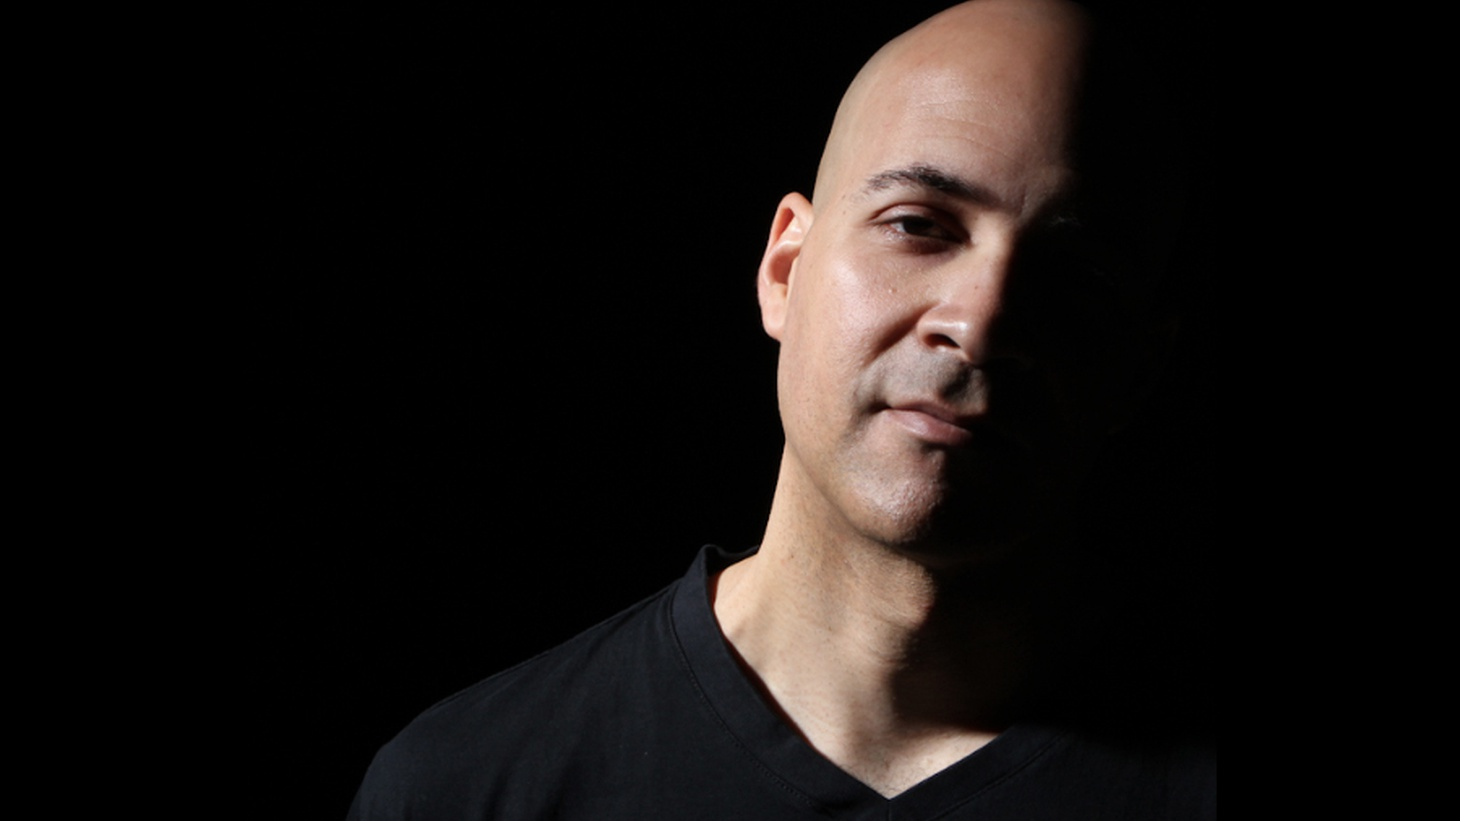 Chicago House DJ and Producer, Steve Maestro, will be guest DJ on Chocolate City at 11pm.